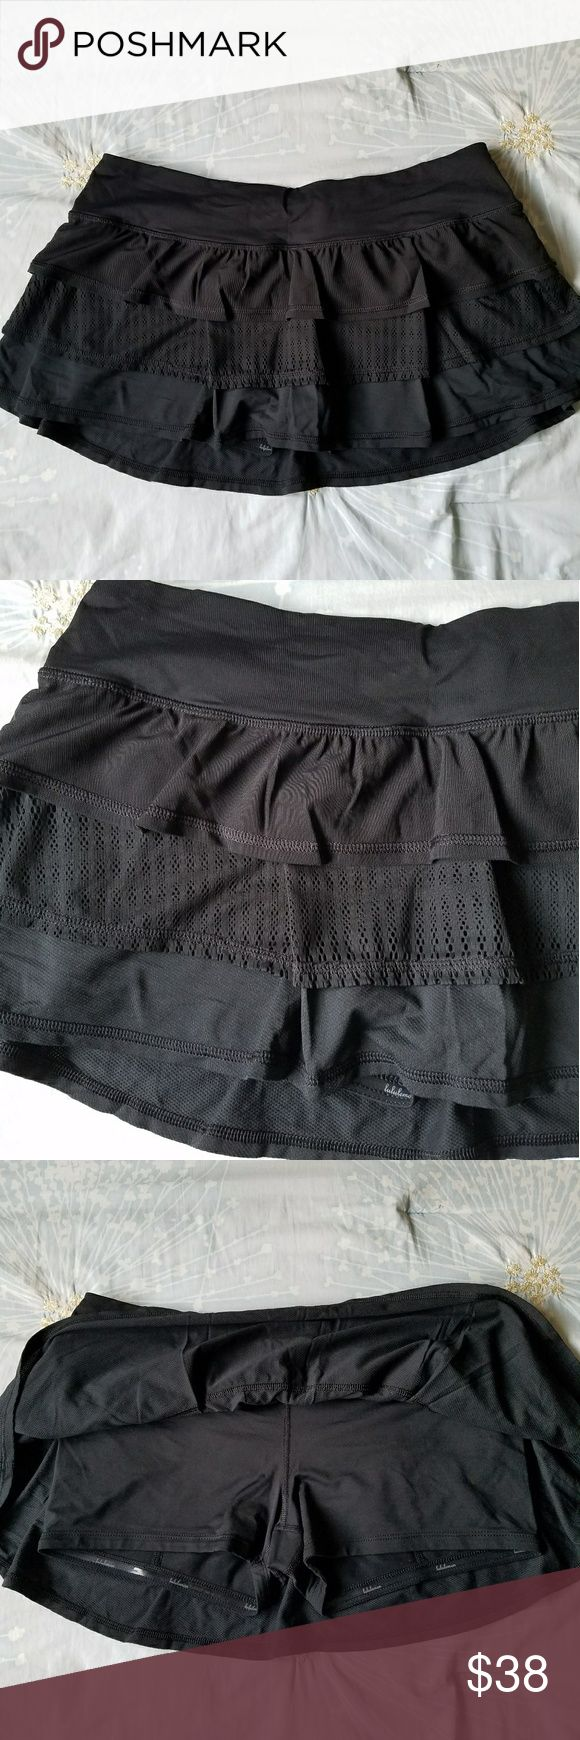 Lululemon Black run skirt Classic, 3 tier fabric, lululemon run skirt!  From some classic lulu days in terms of design. Features 3 different types of mesh on the body and luxtreme inner lining. Gel lining on shorts so they stay down during activities.   Mesh on the inside of the waistband for extra comfort and breathability. lululemon athletica Skirts